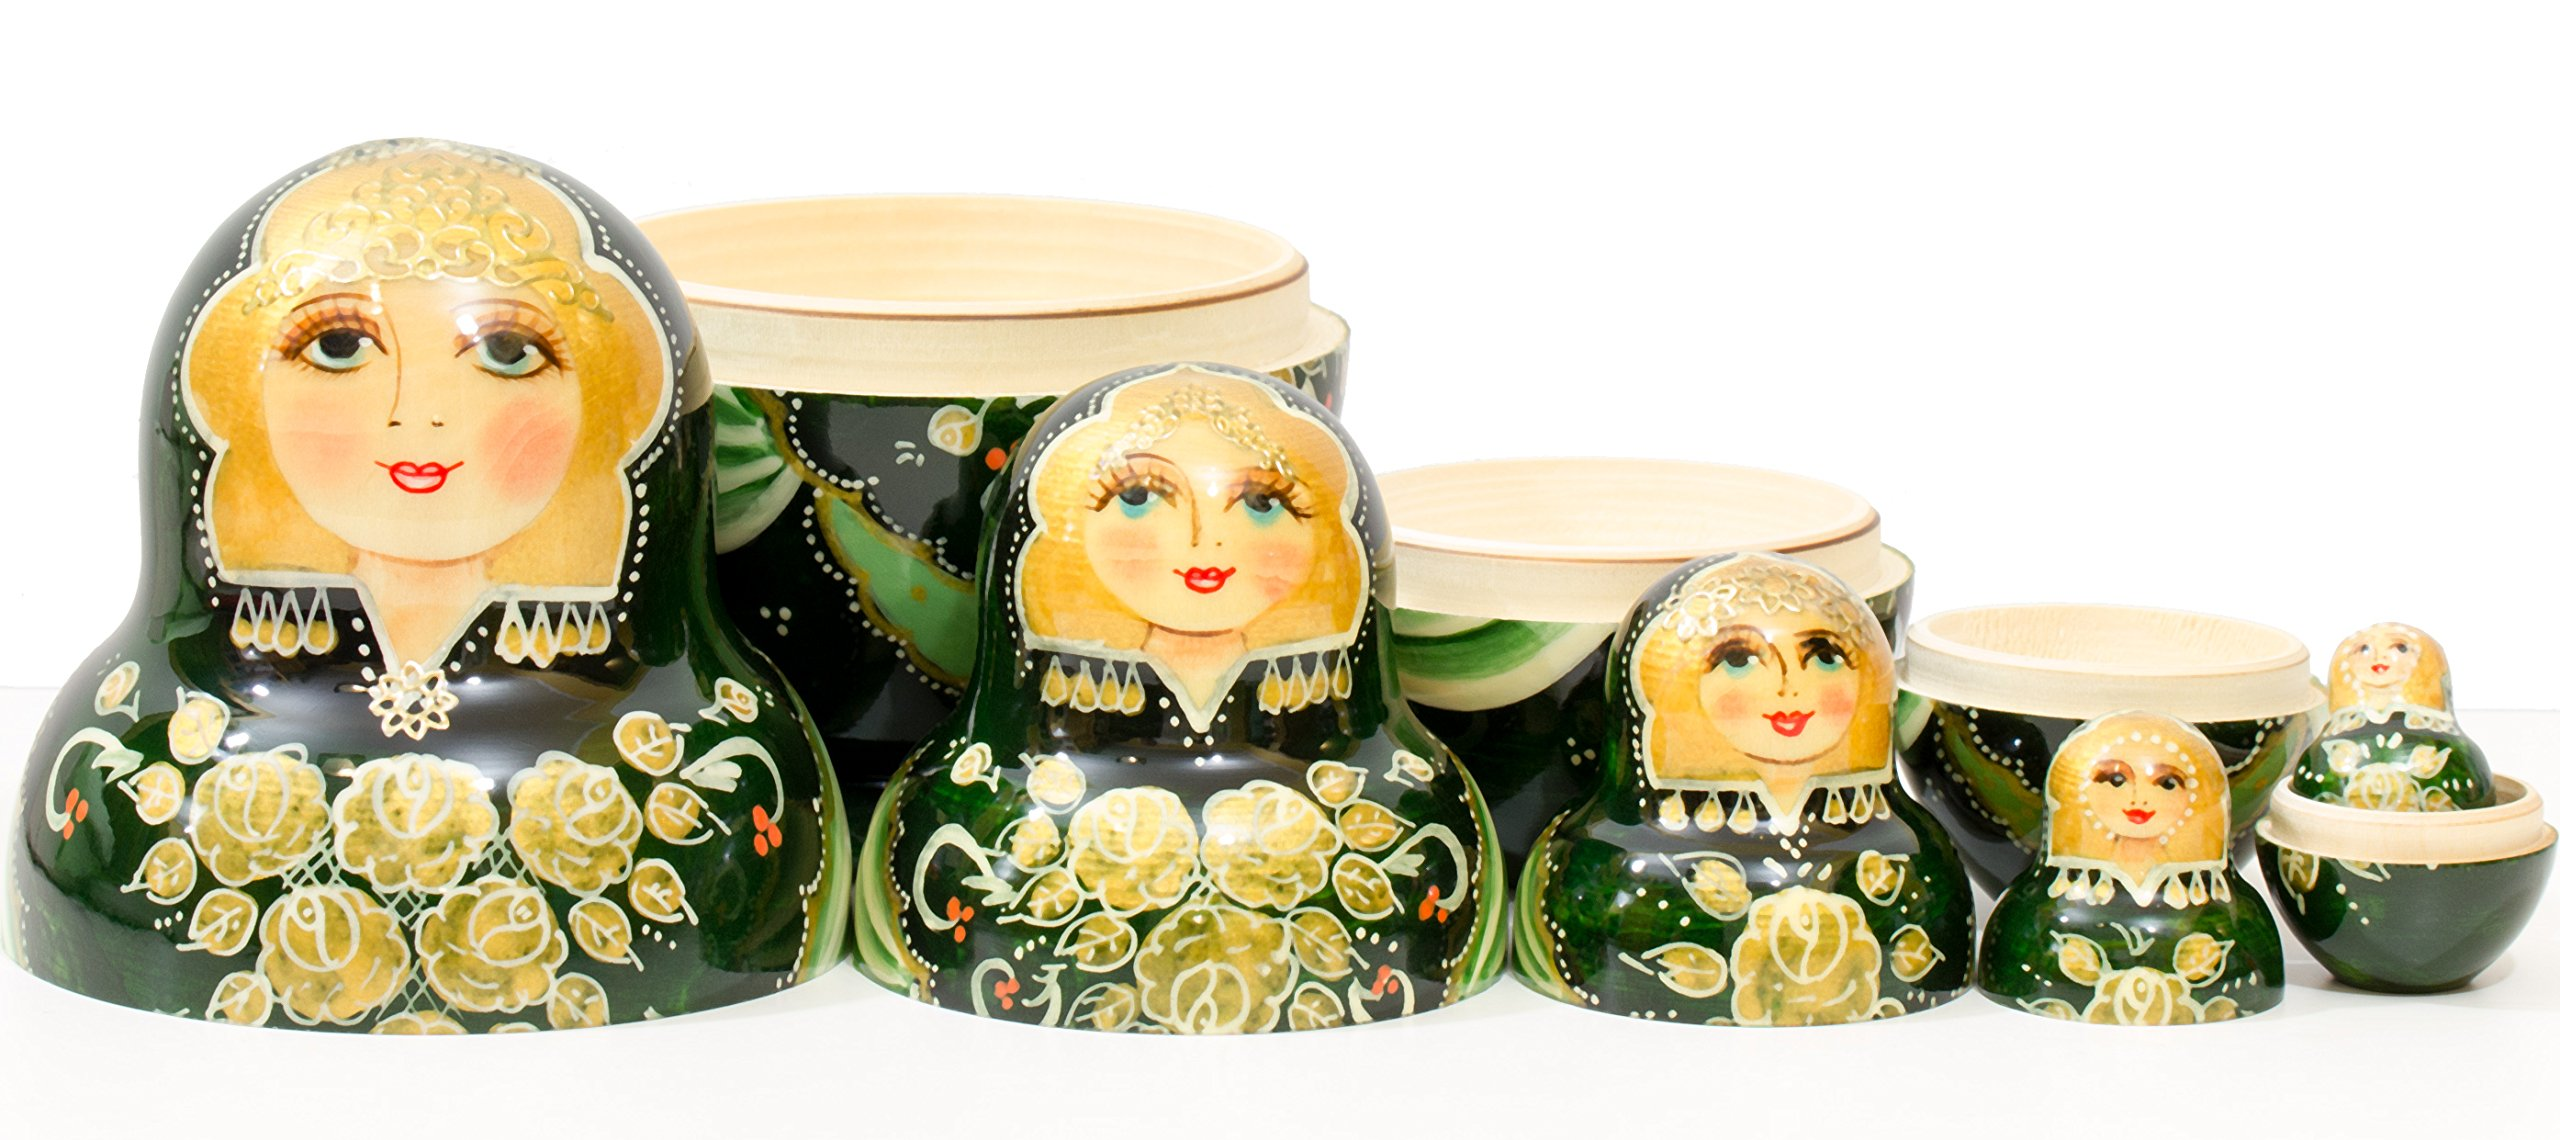 Russian Nesting Doll - Anastasia - Hand Painted in Russia - Traditional Matryoshka Babushka (6``(5 Dolls in 1), Green) by craftsfromrussia (Image #4)